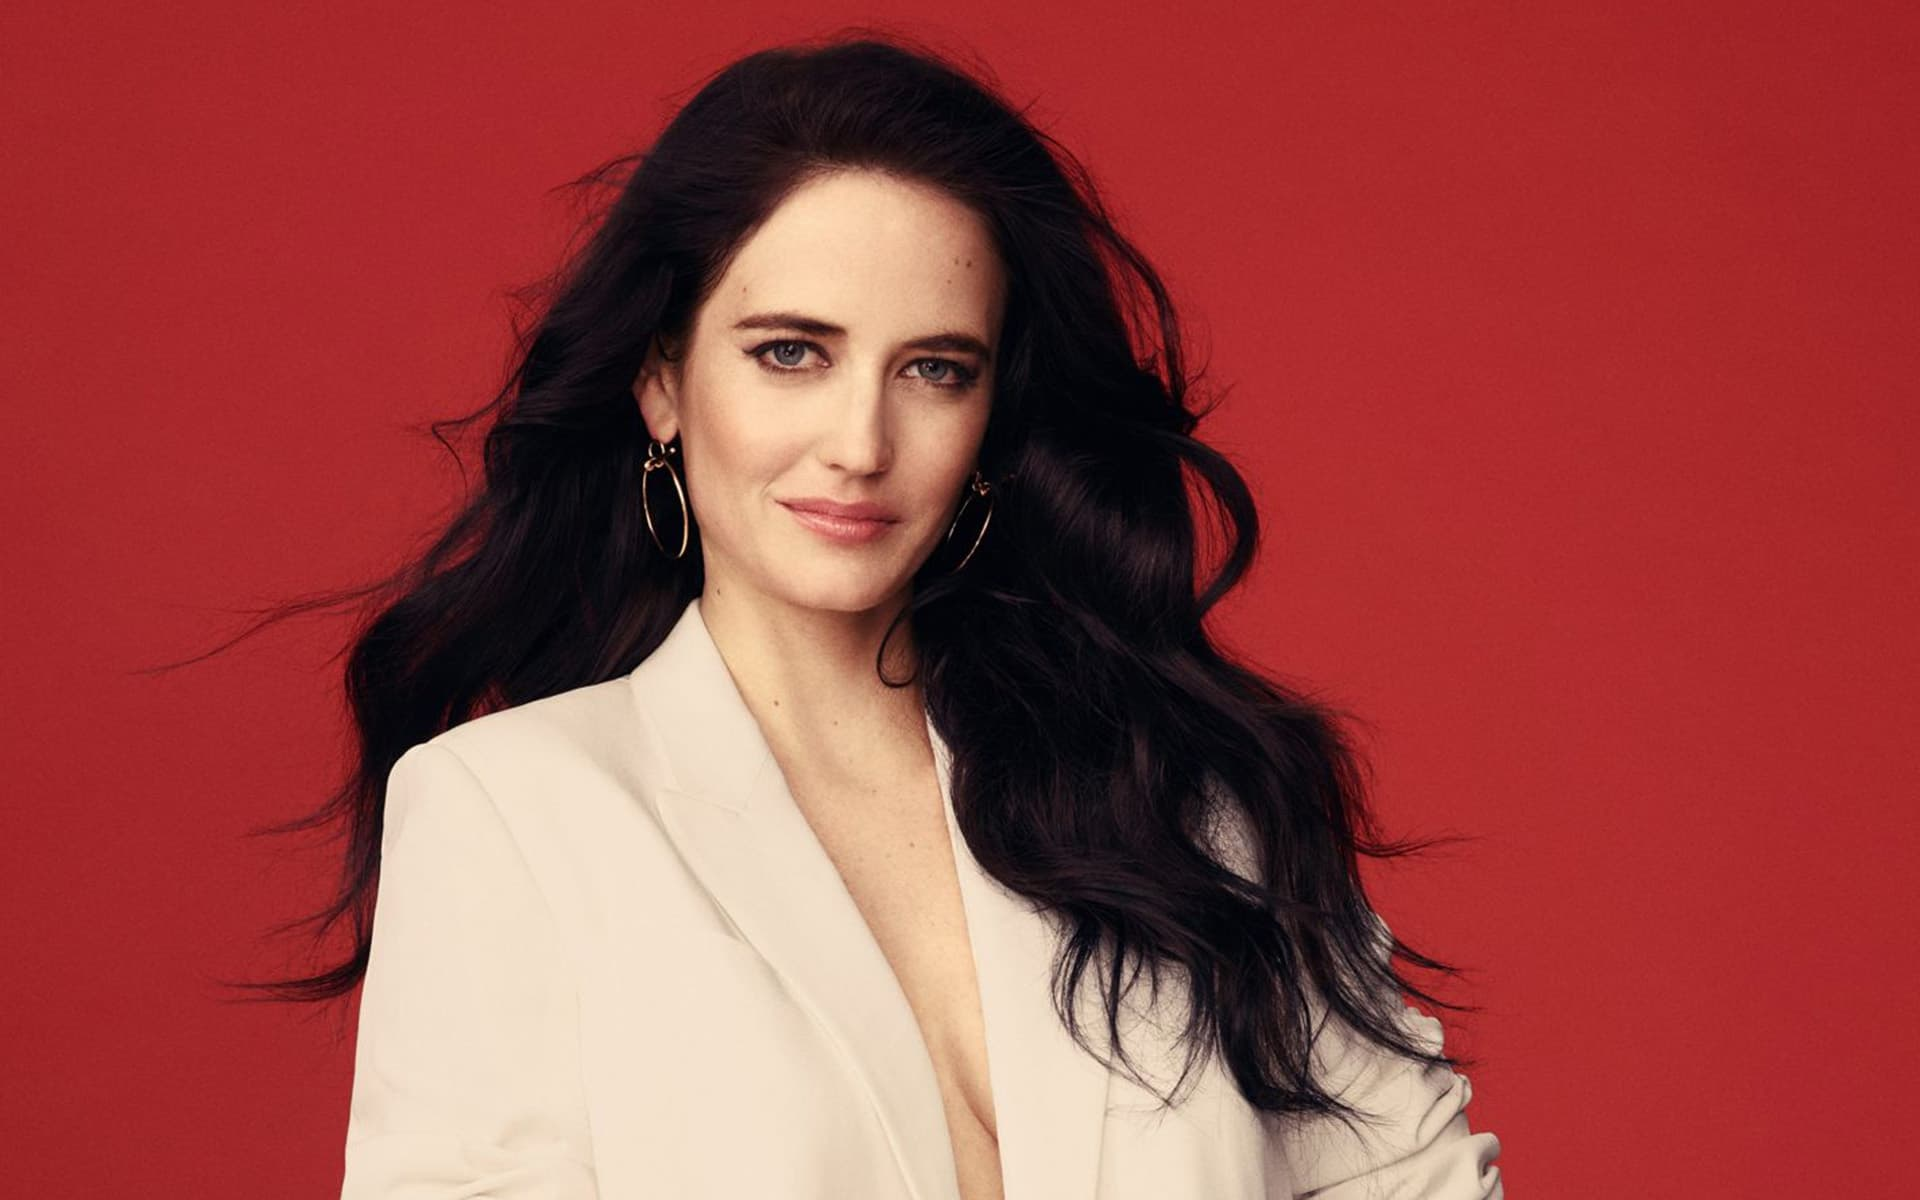 Widescreen Car Wallpaper Eva Green Wallpapers Hd Photos Images And Pictures For